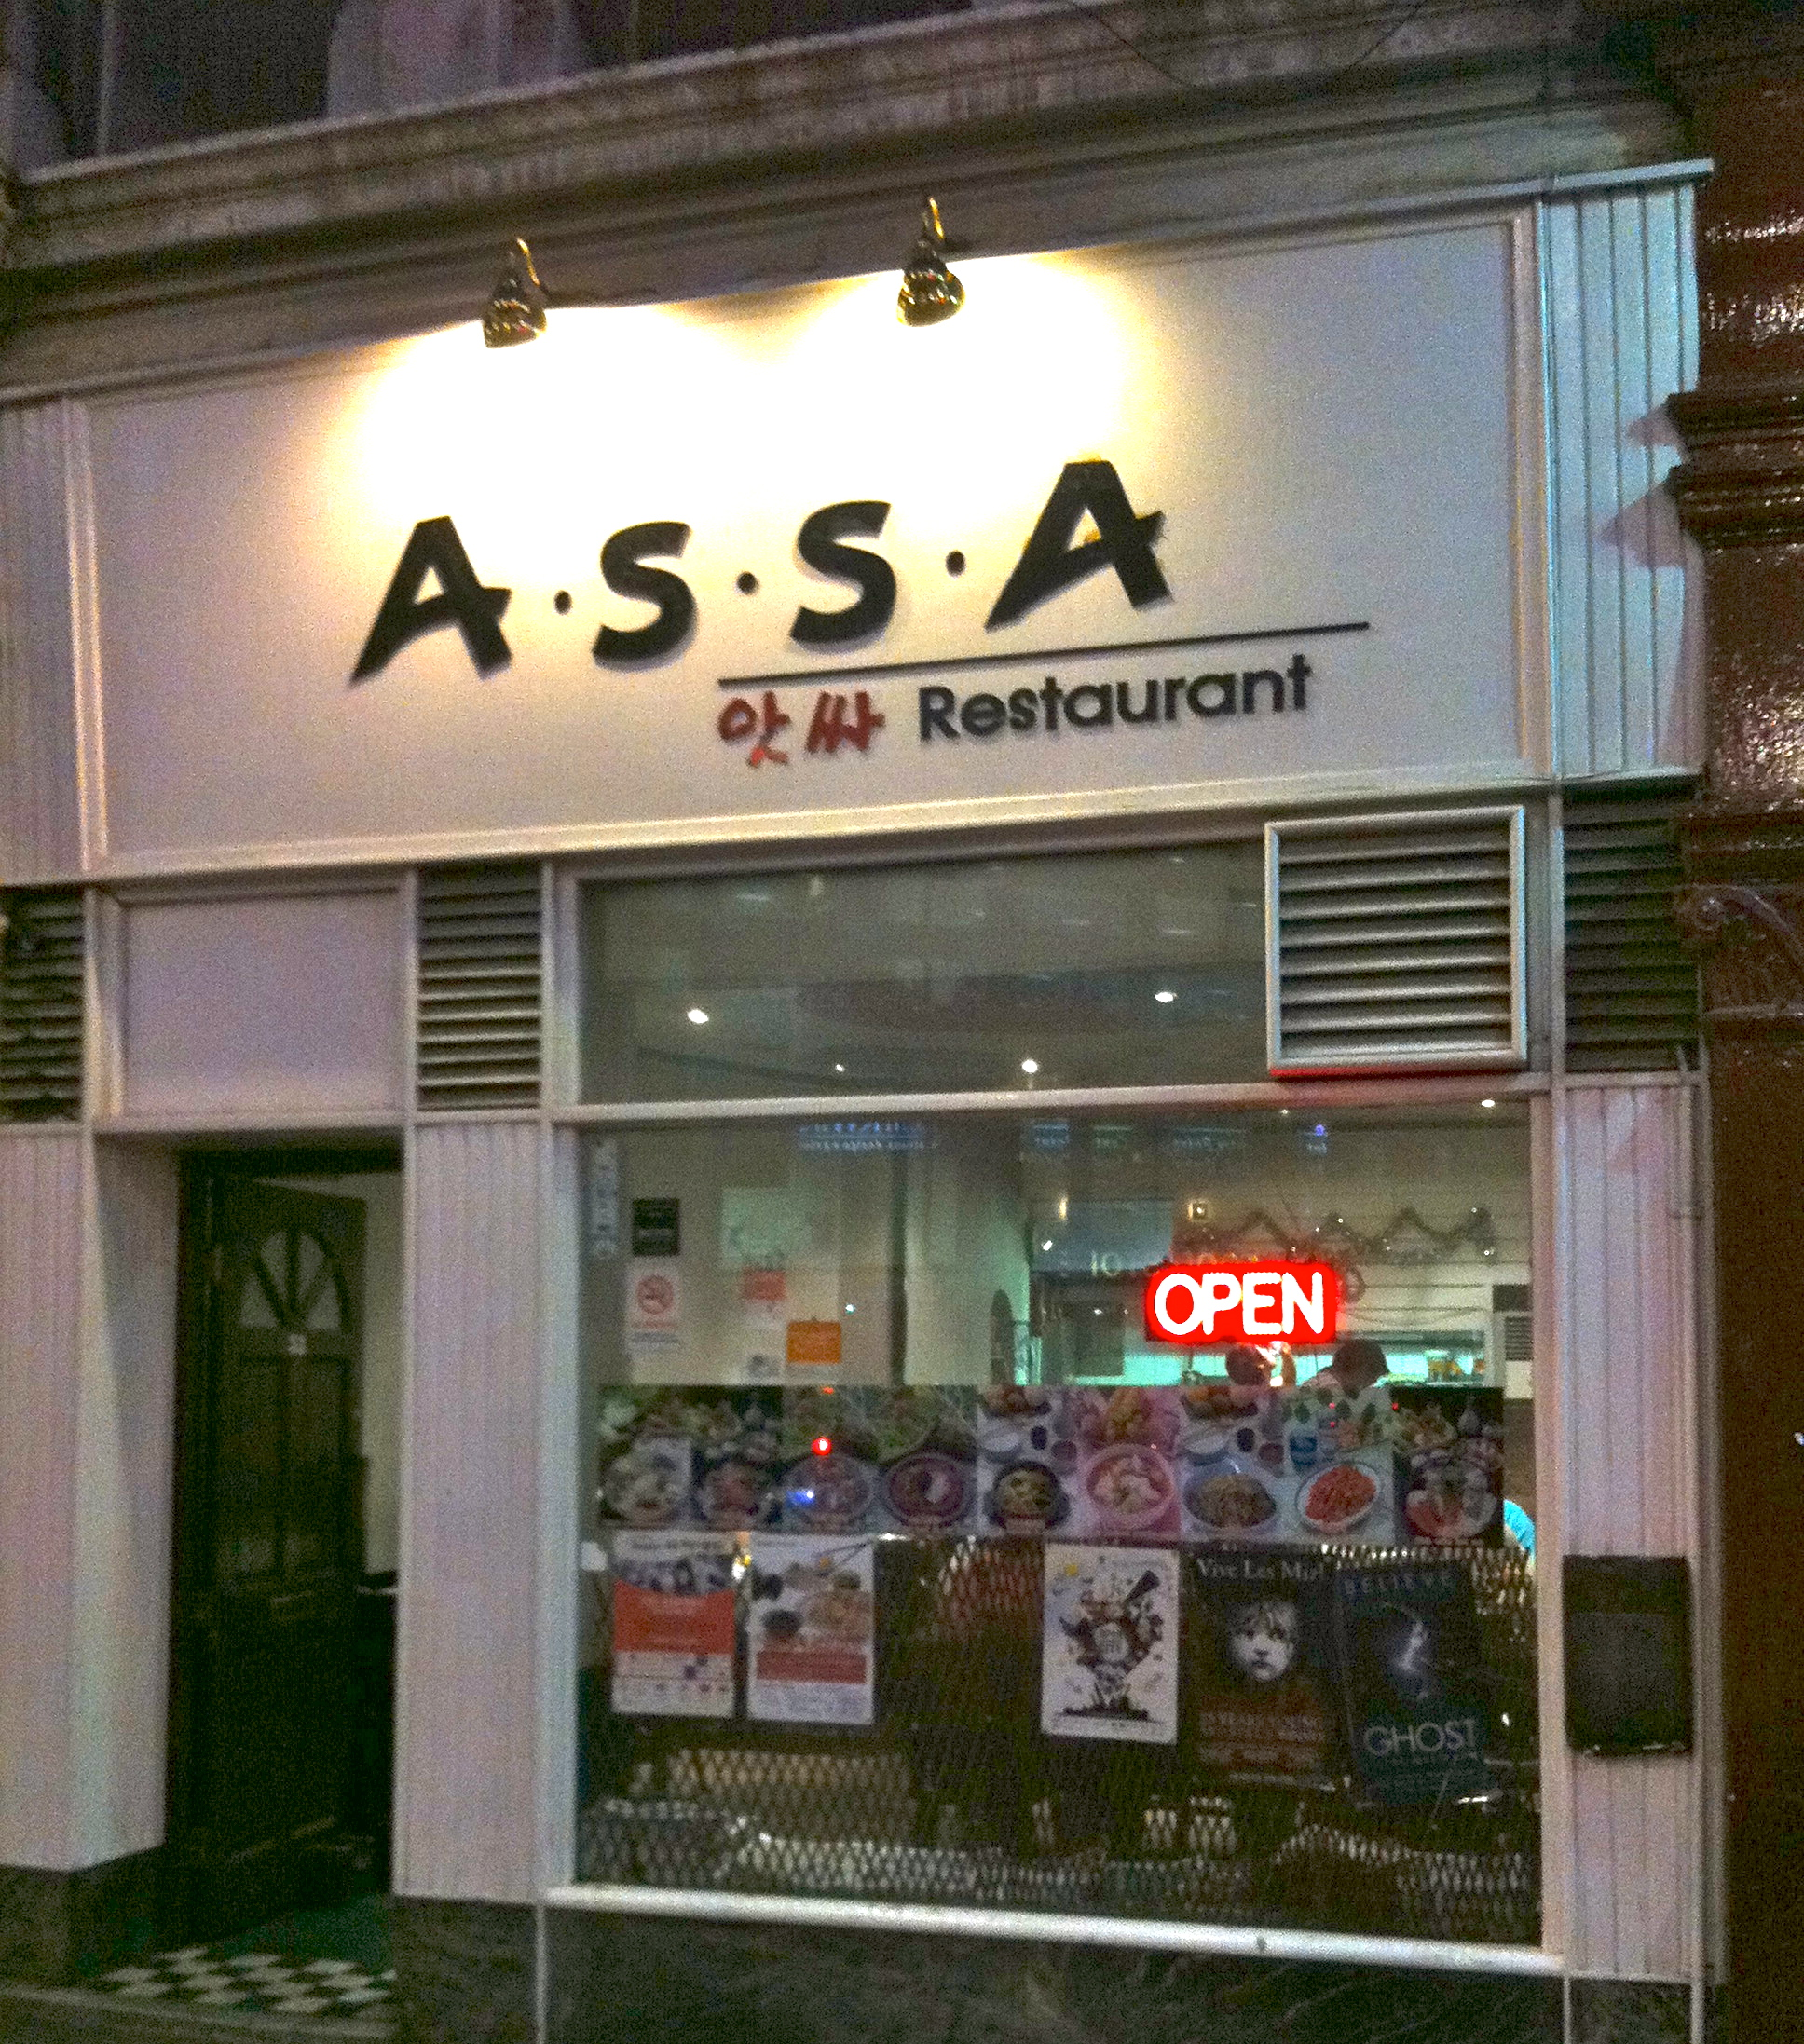 Soho Korean Restaurant London Assa